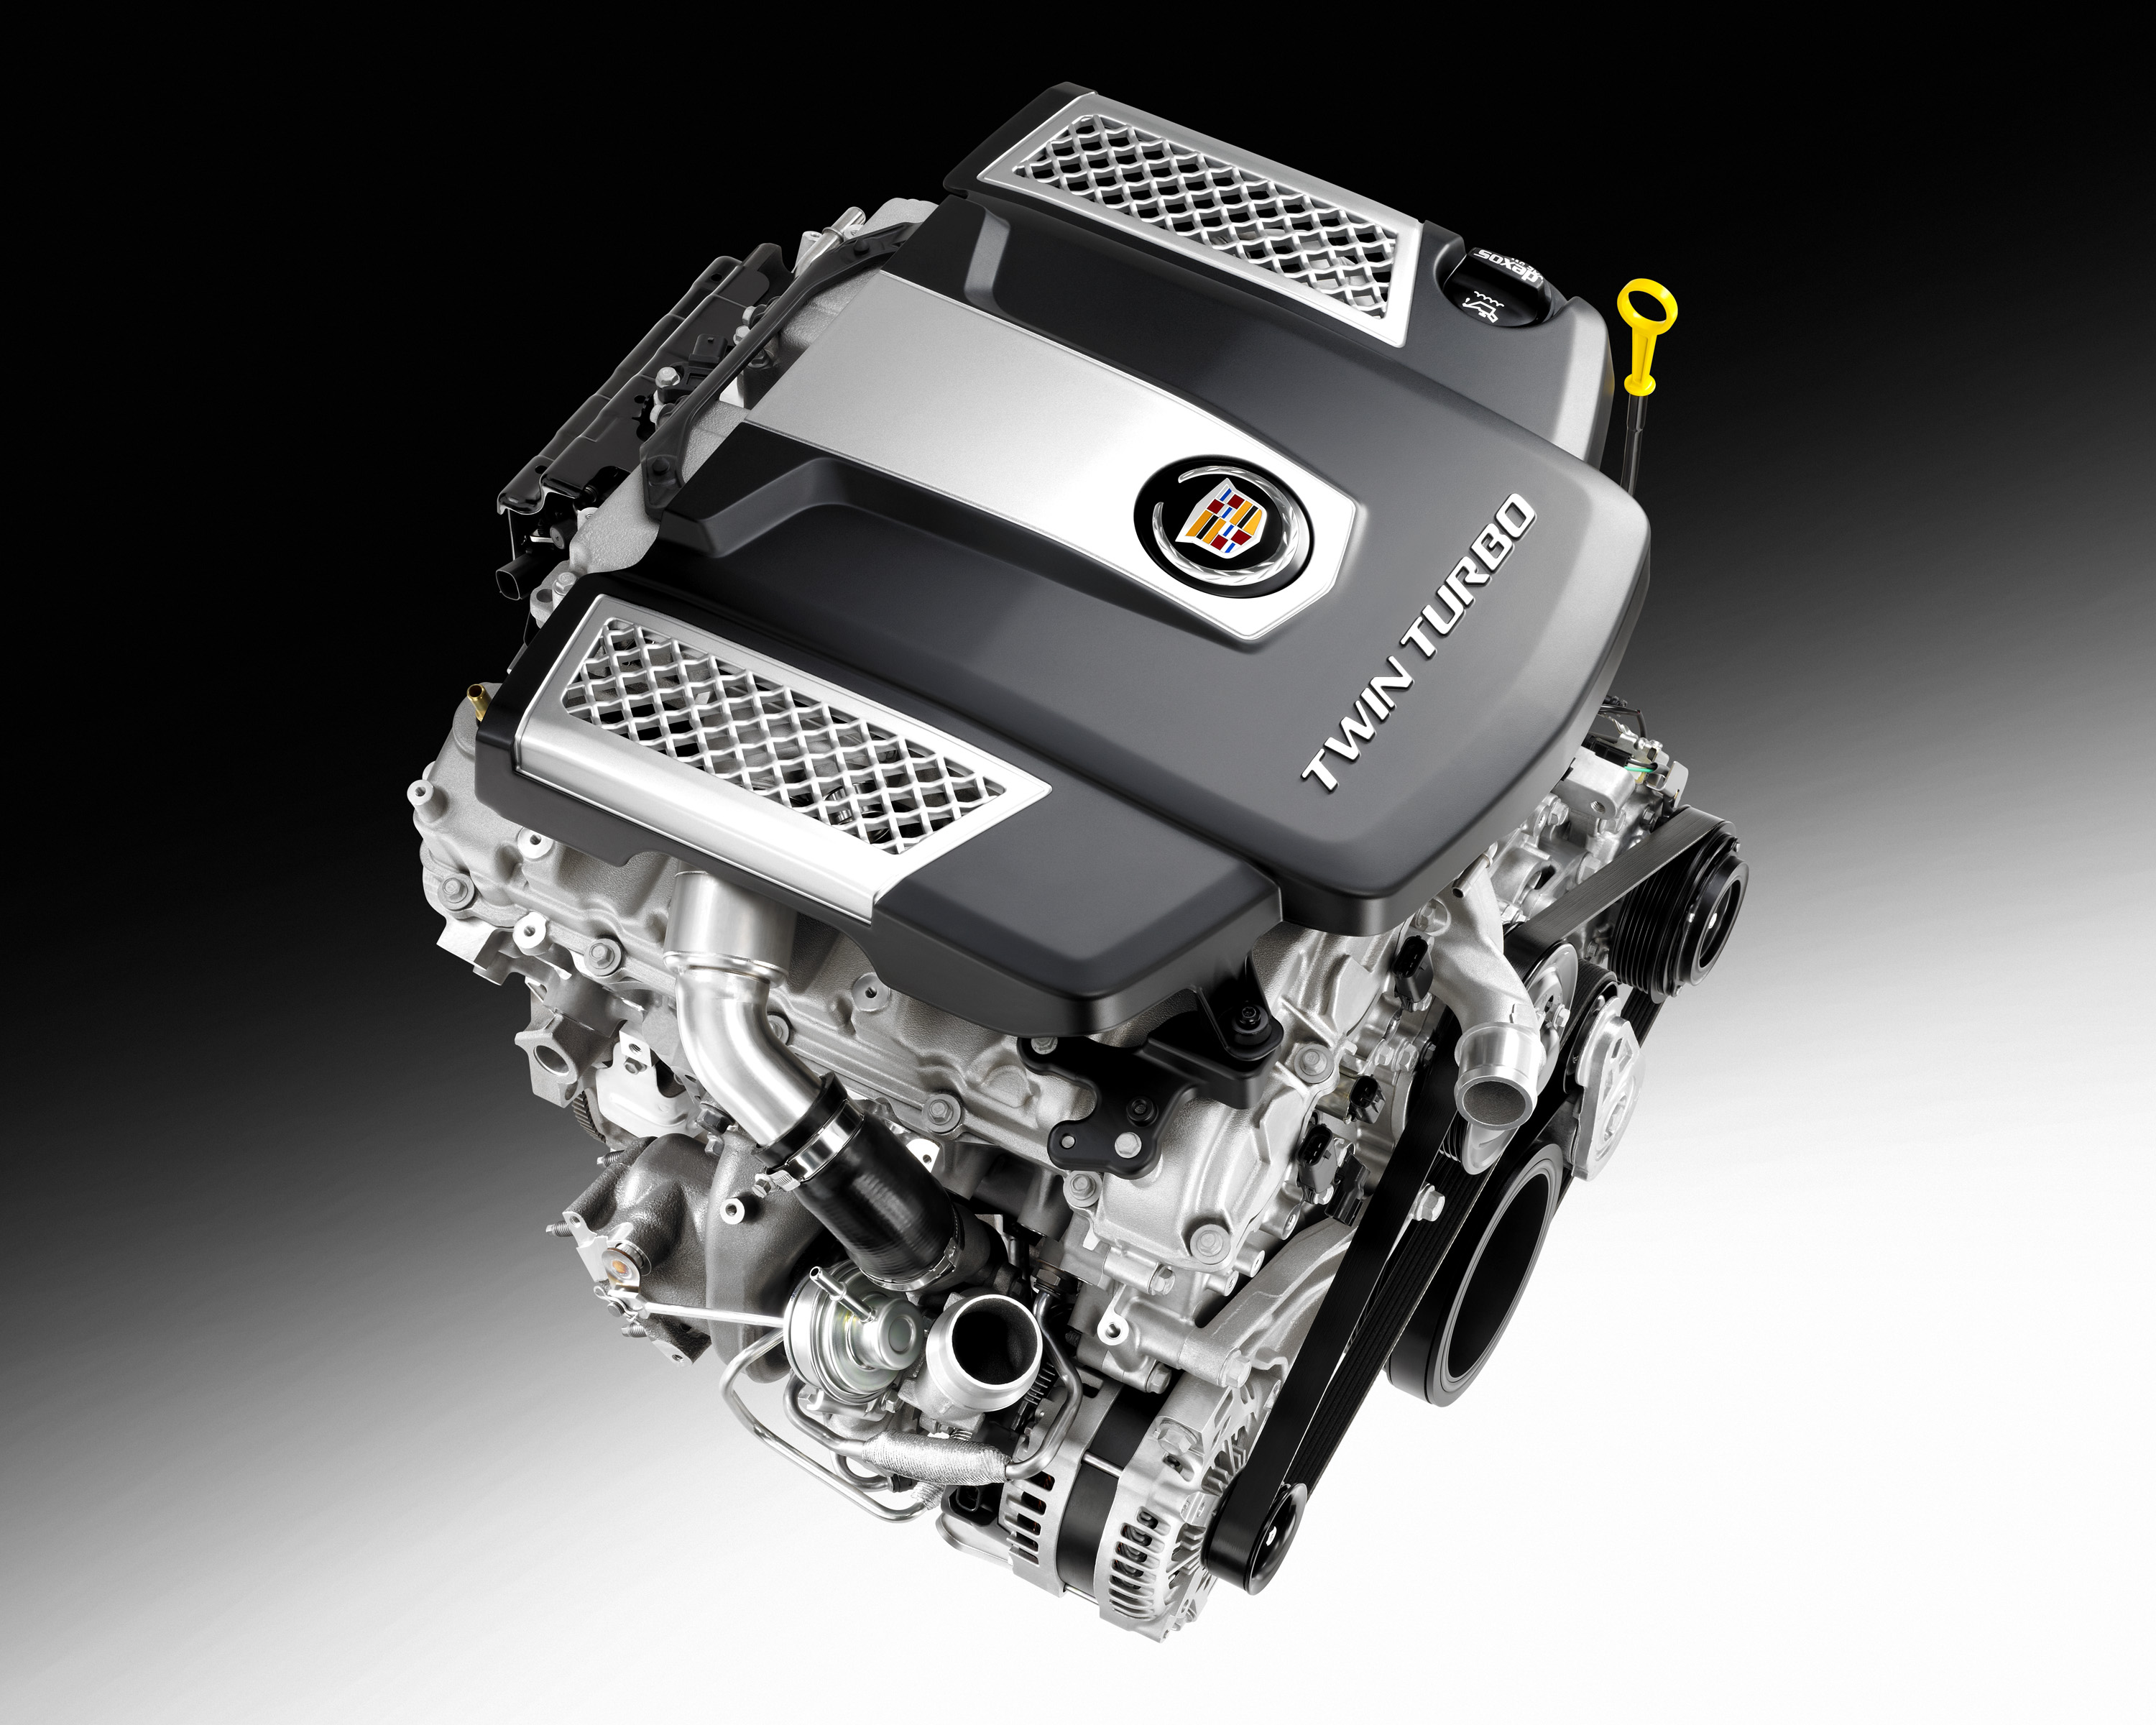 Cadillac Twin-Turbo Debuts in All-New 2014 CTS Sedan